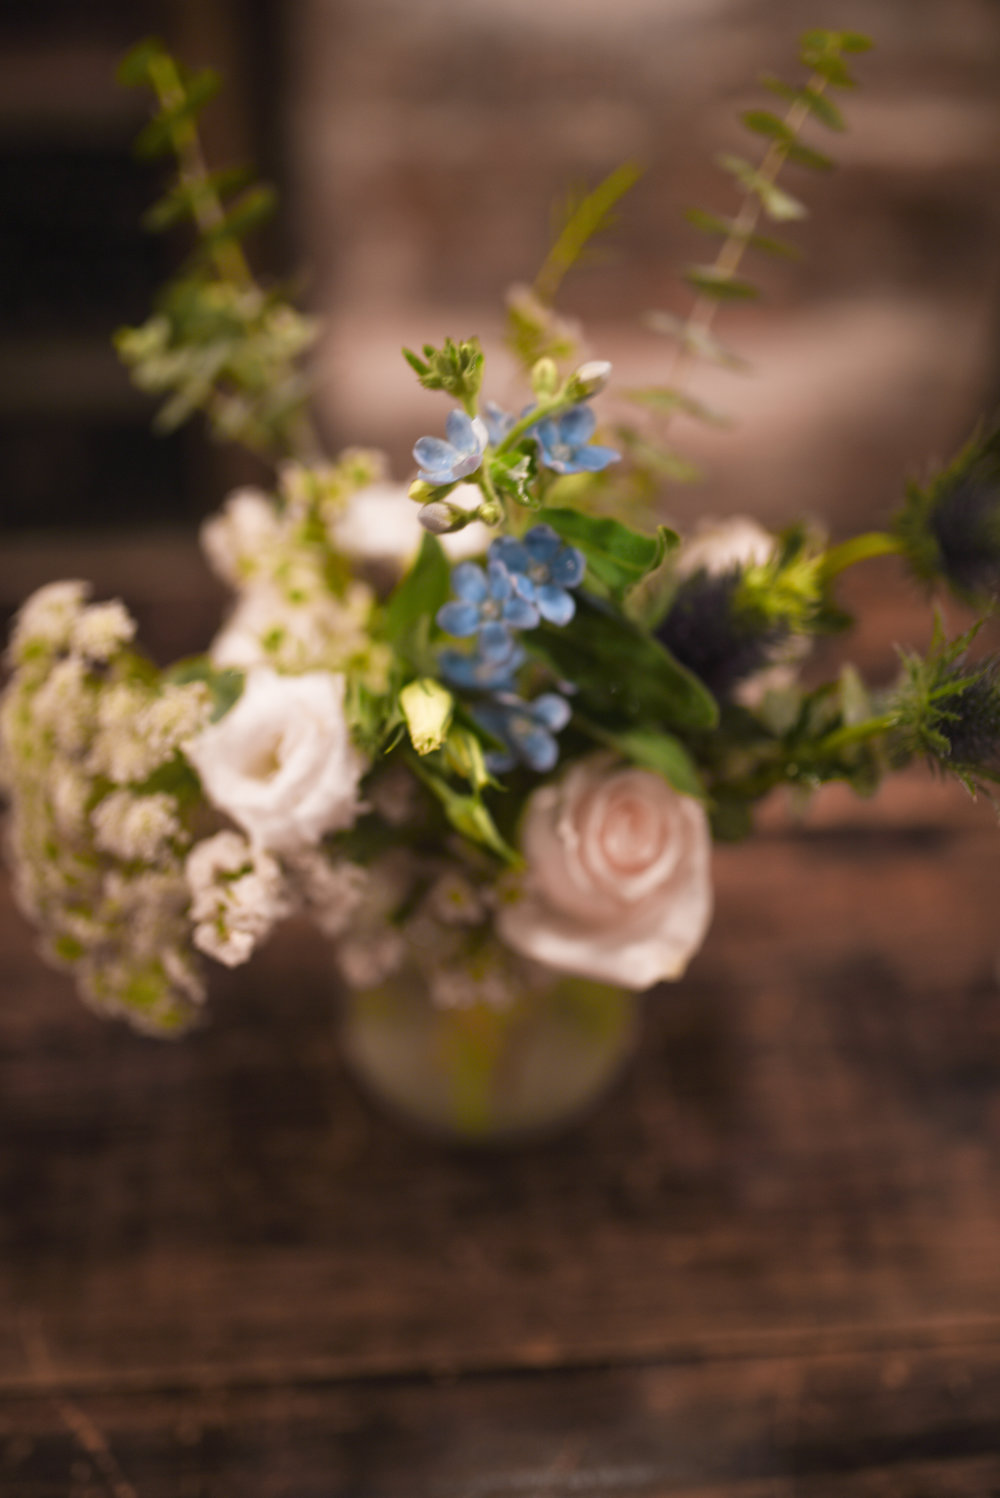 Mason jars with wild looking arrangements are lovely for this Brooklyn wedding reception